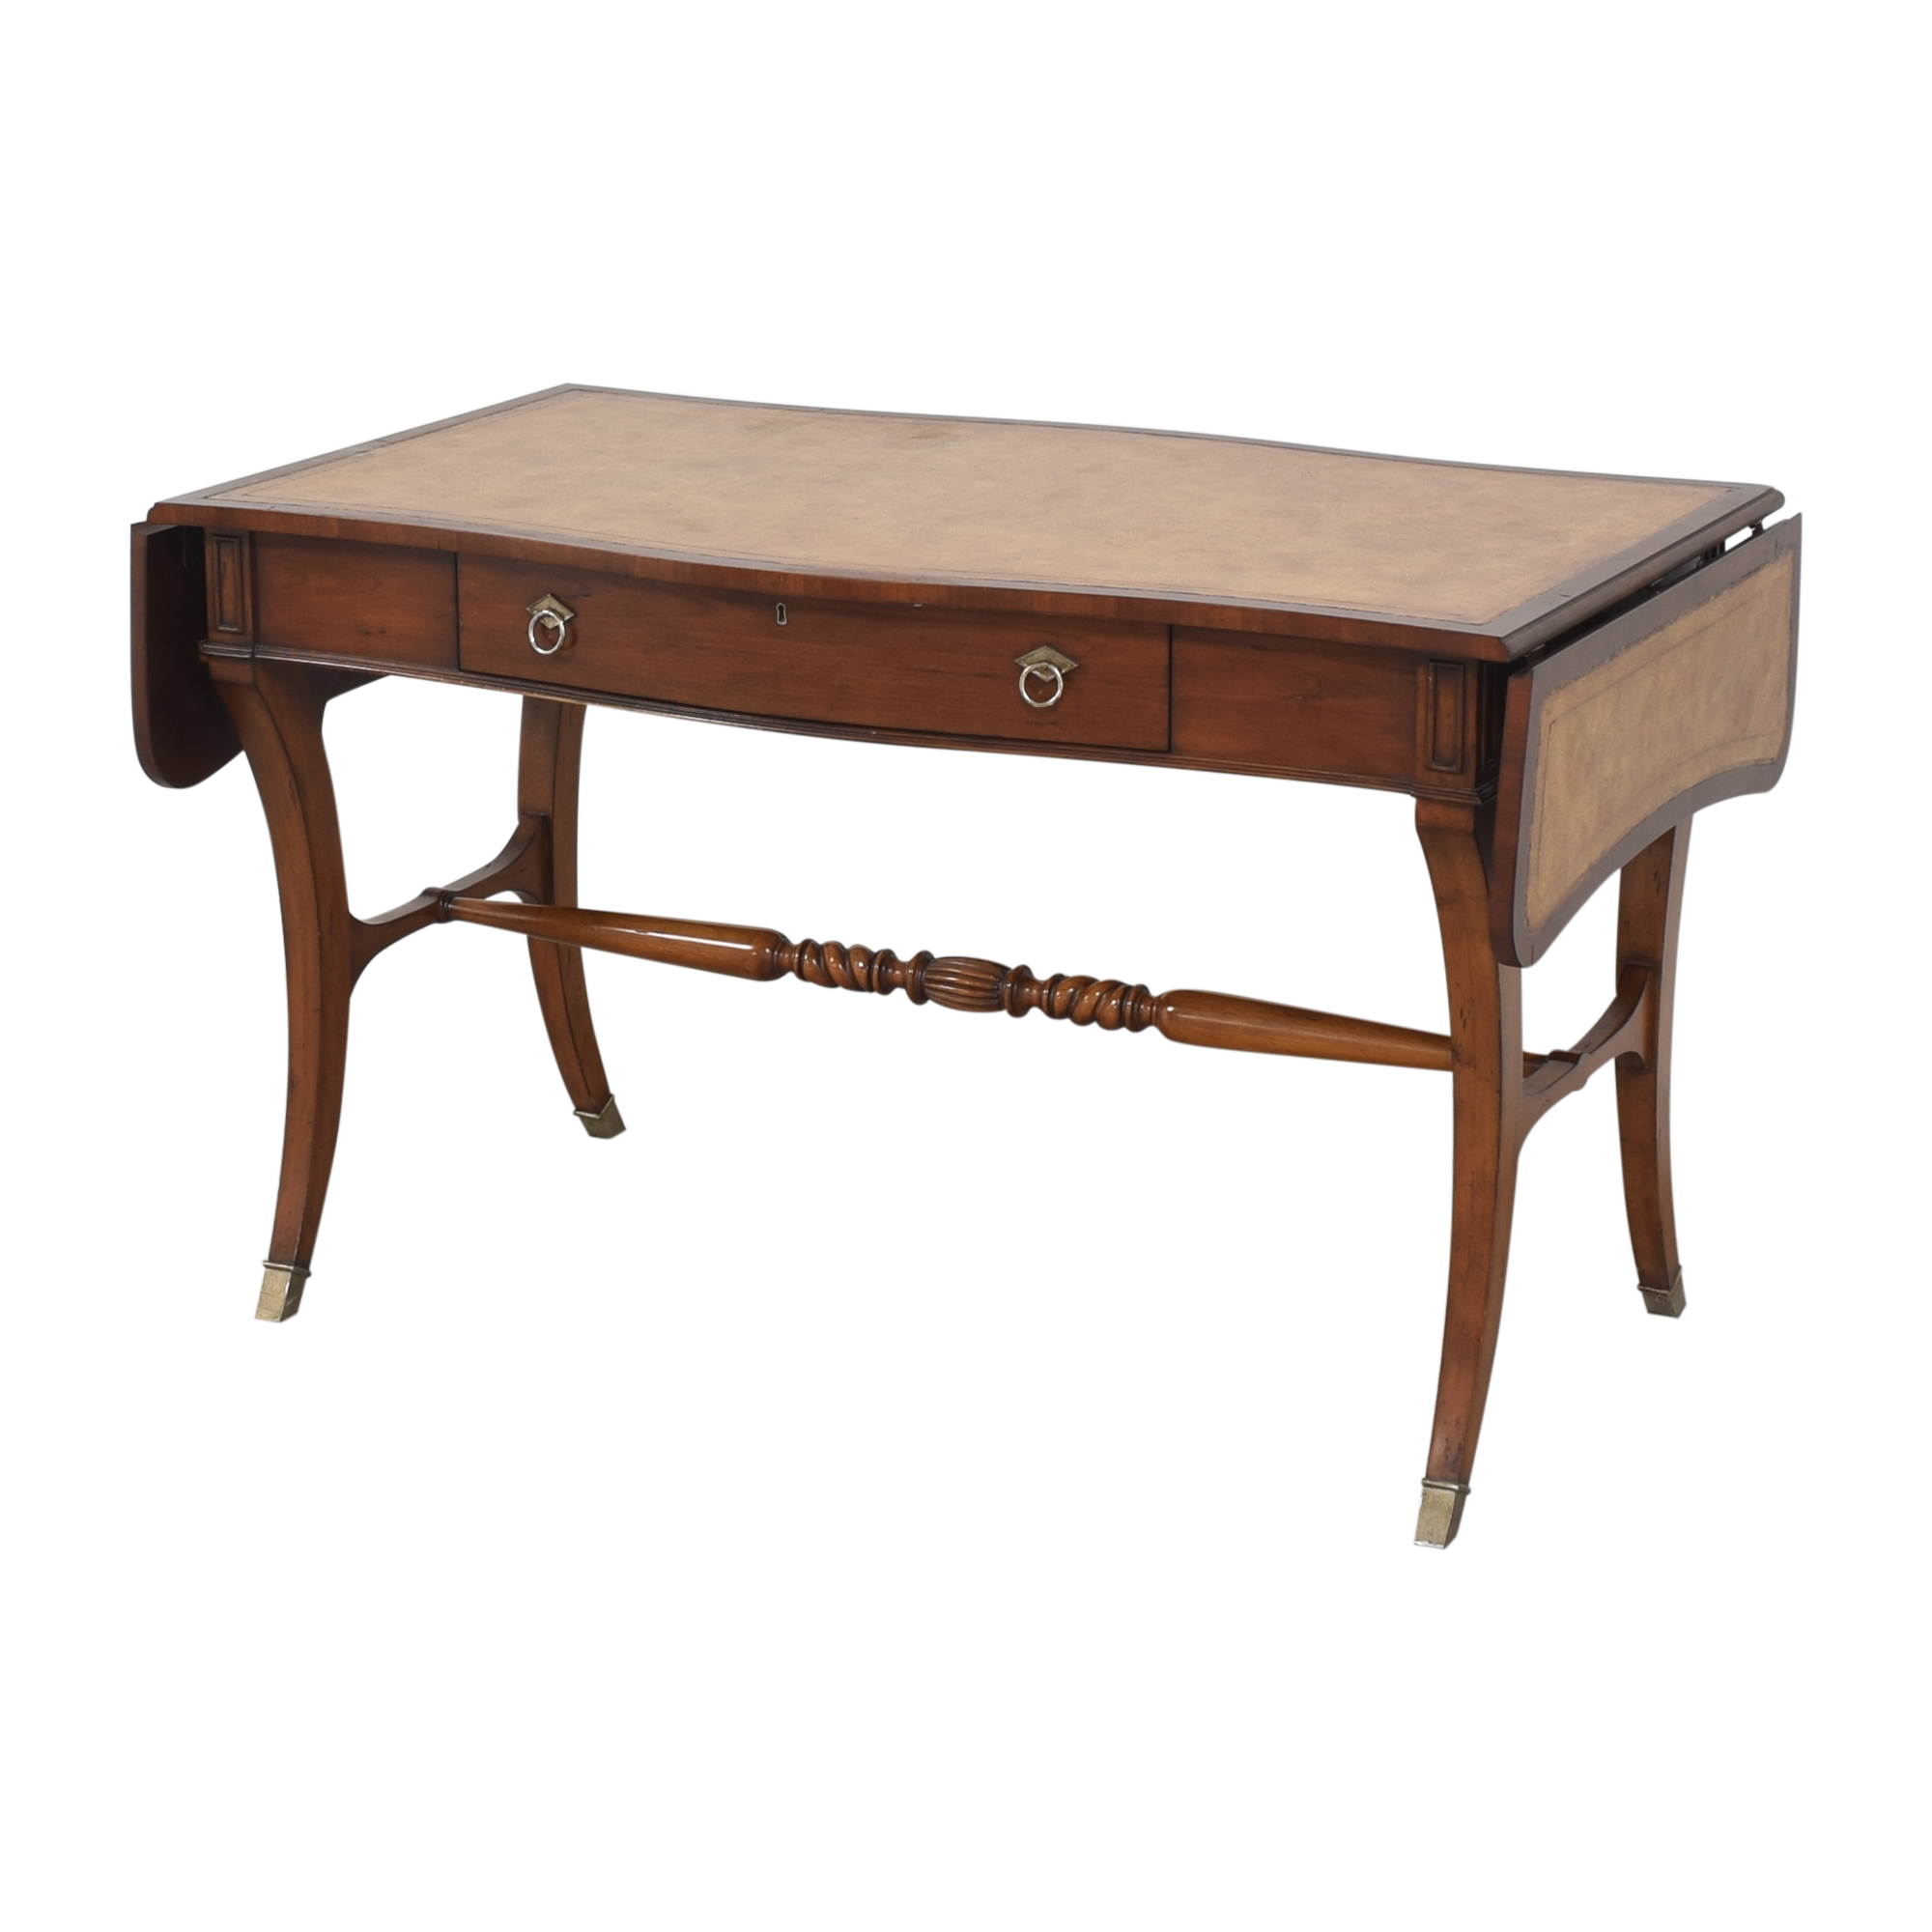 Thomasville Thomasville Spencer Writing Table ct